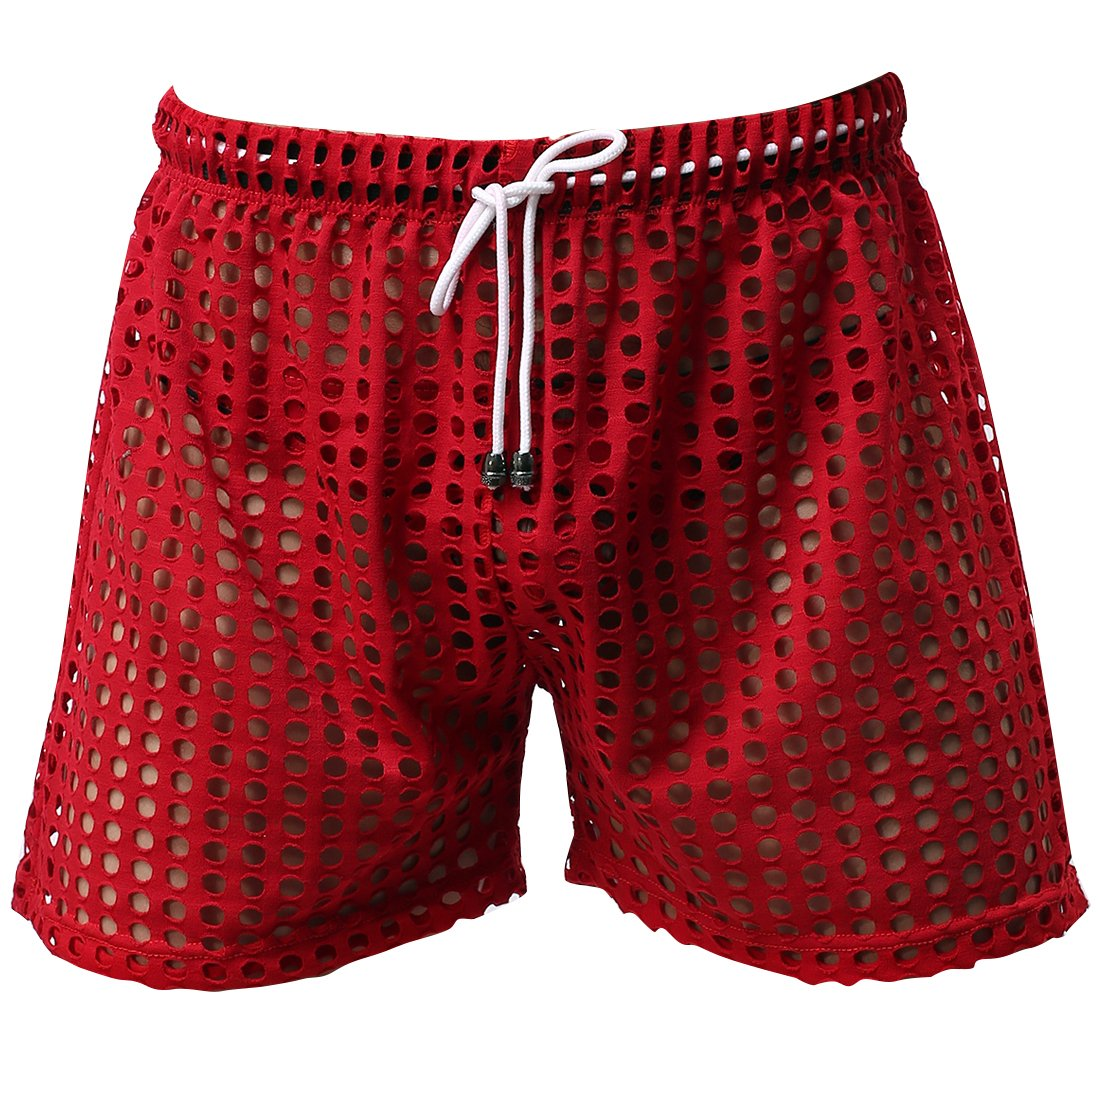 FEESHOW Men's See-Through Mesh Loose Shorts Lounge Underwear Cover up Boxer Trunks